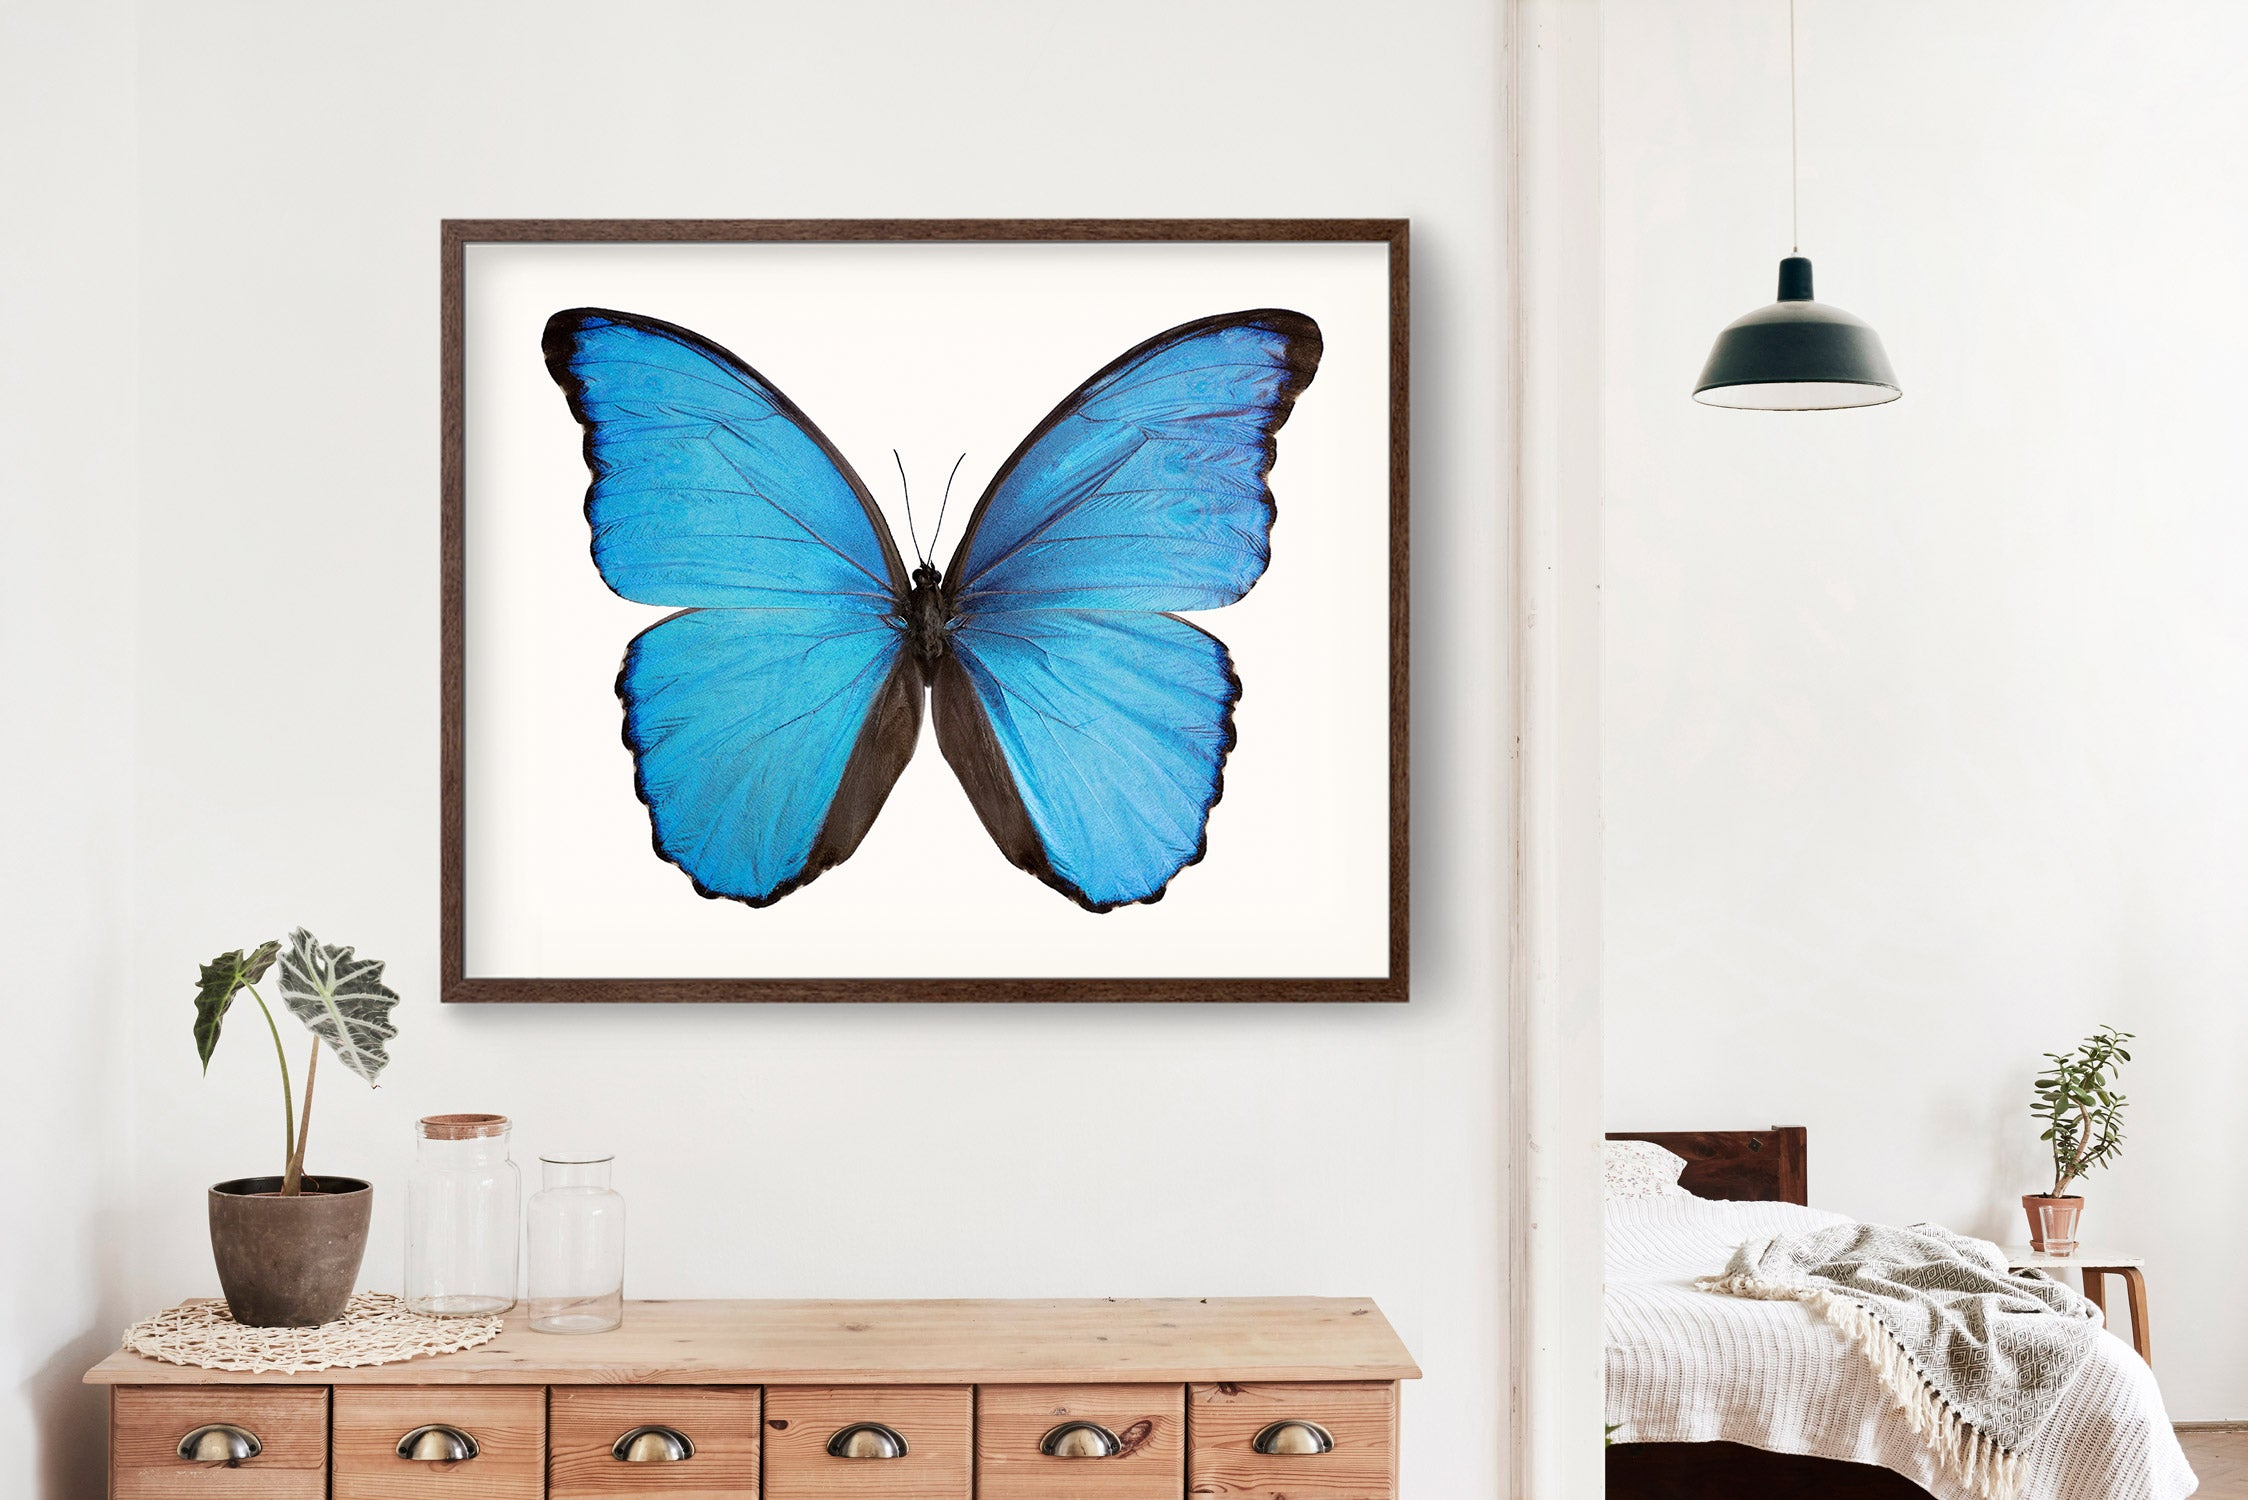 Butterfly Photo No. 17 - Morpho didius - Blue Morpho Butterfly Print